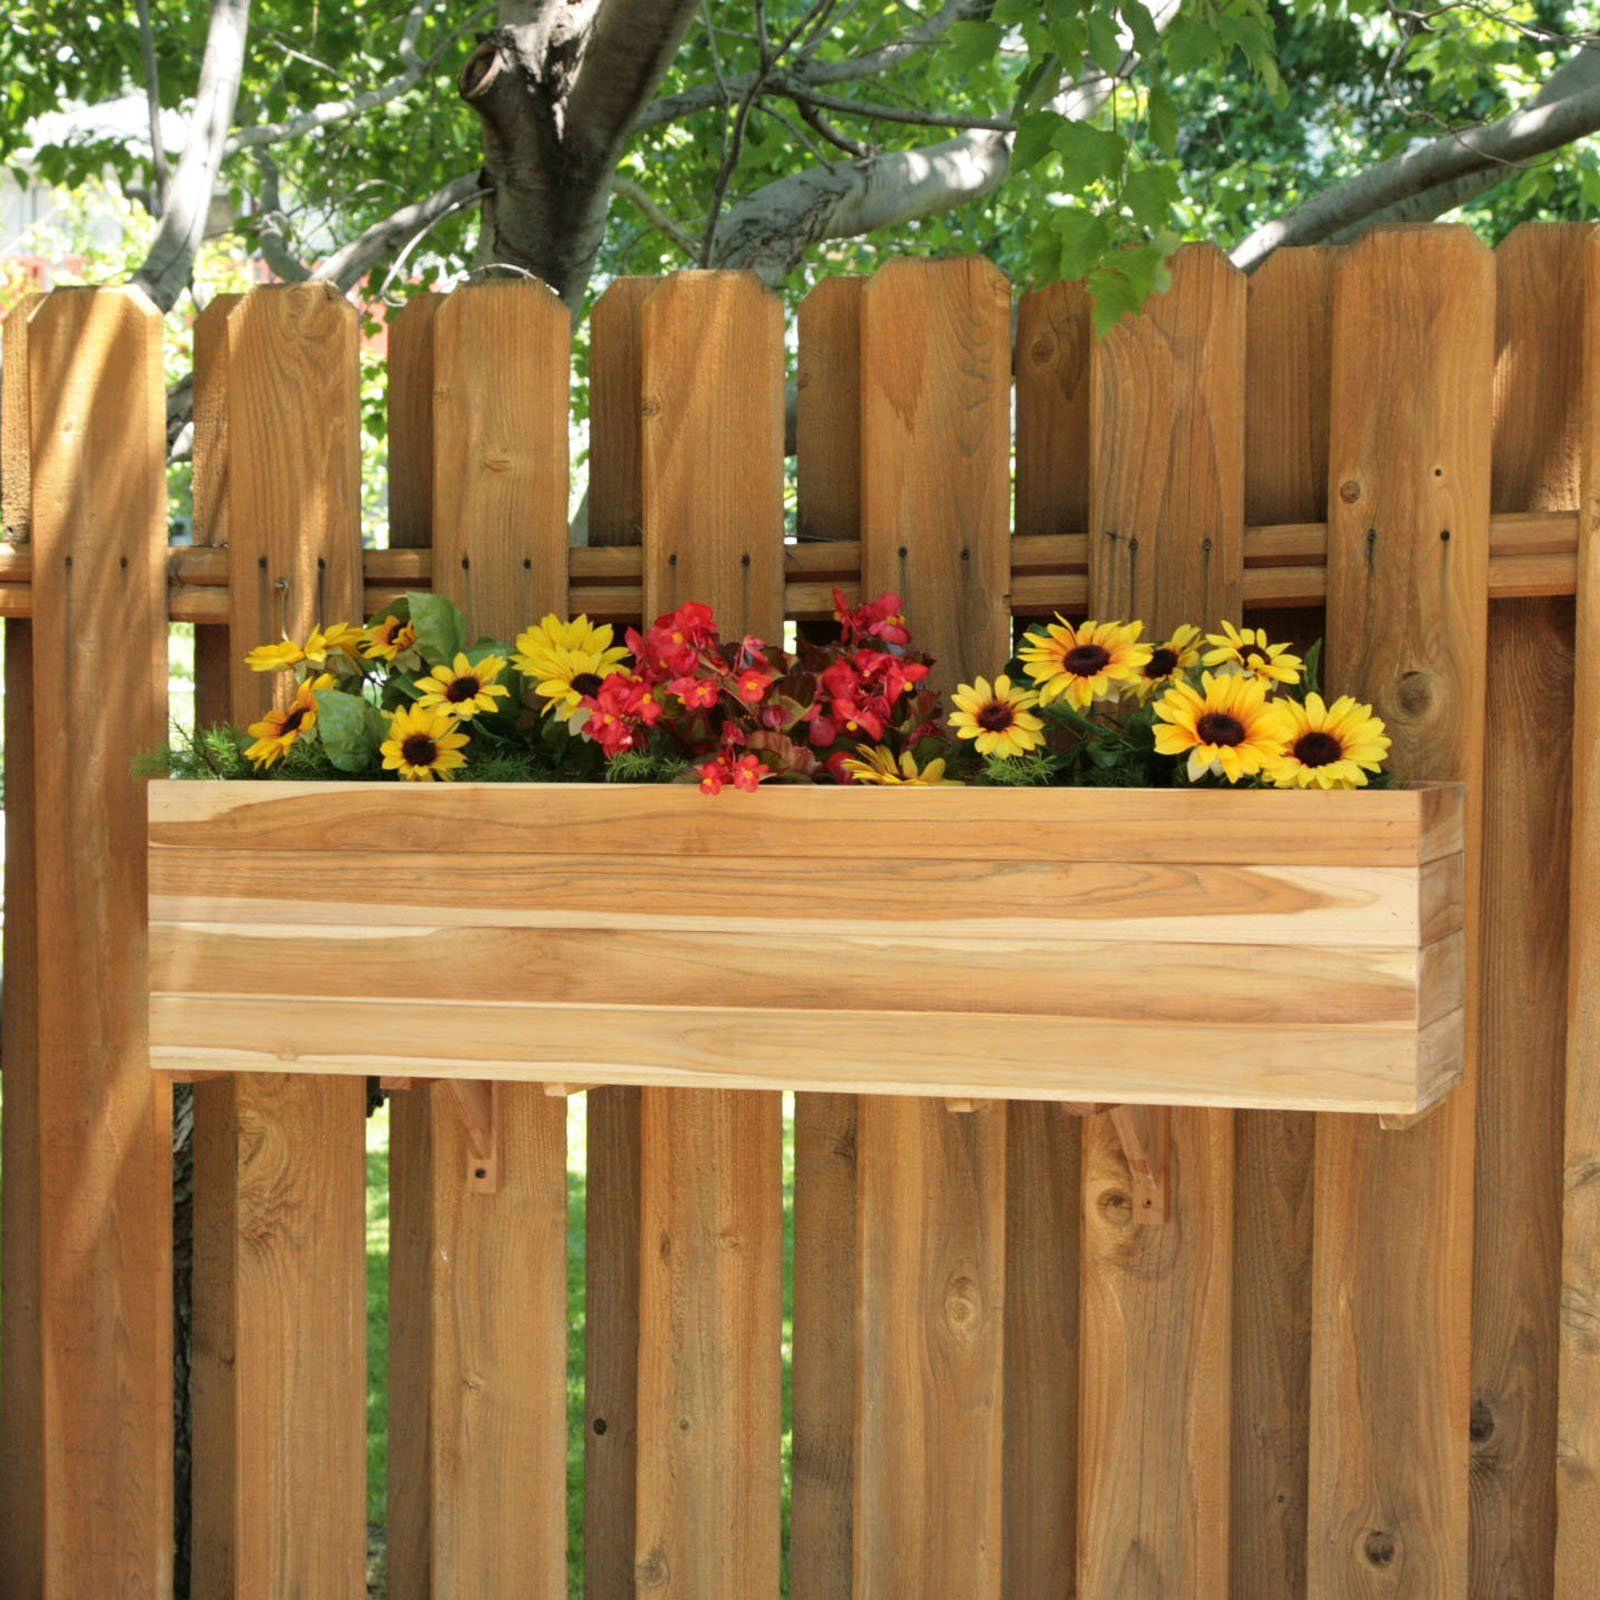 Garden and patio floating wooden flower box design on wooden garden and patio floating wooden flower box design on wooden fence in the sideyard garden baanklon Gallery